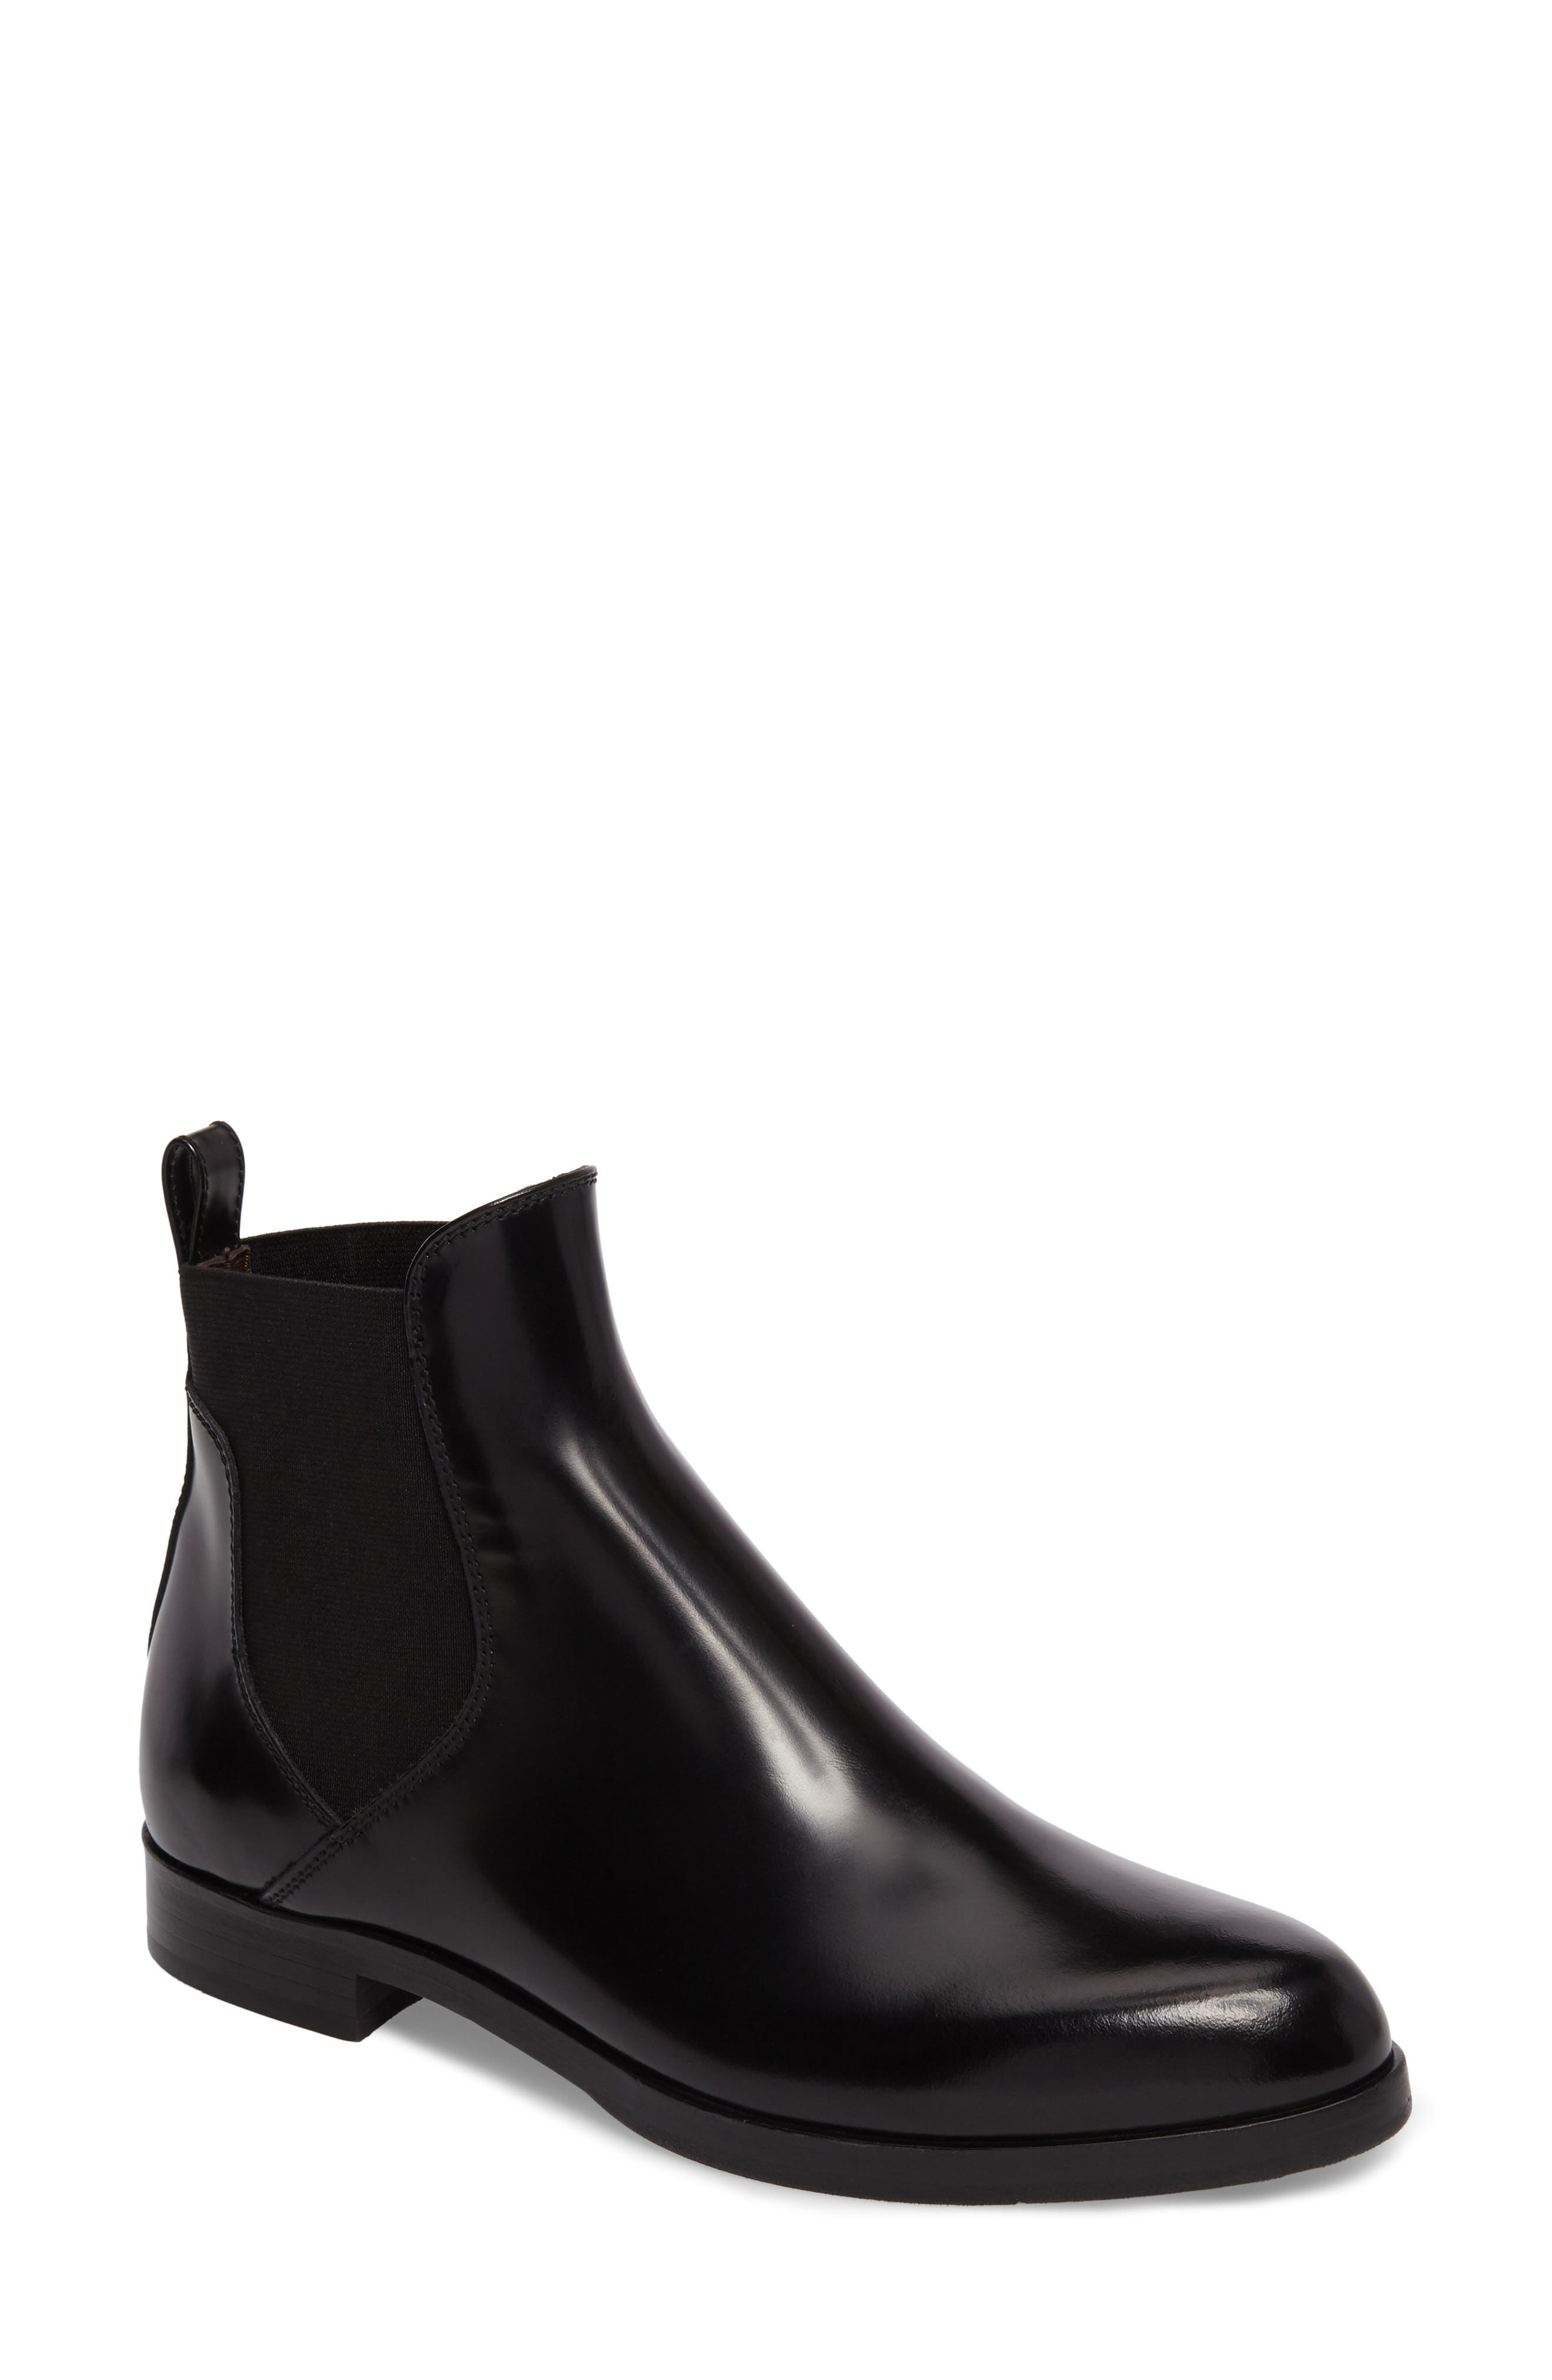 Gored Bootie,                             Main thumbnail 1, color,                             Black Leather